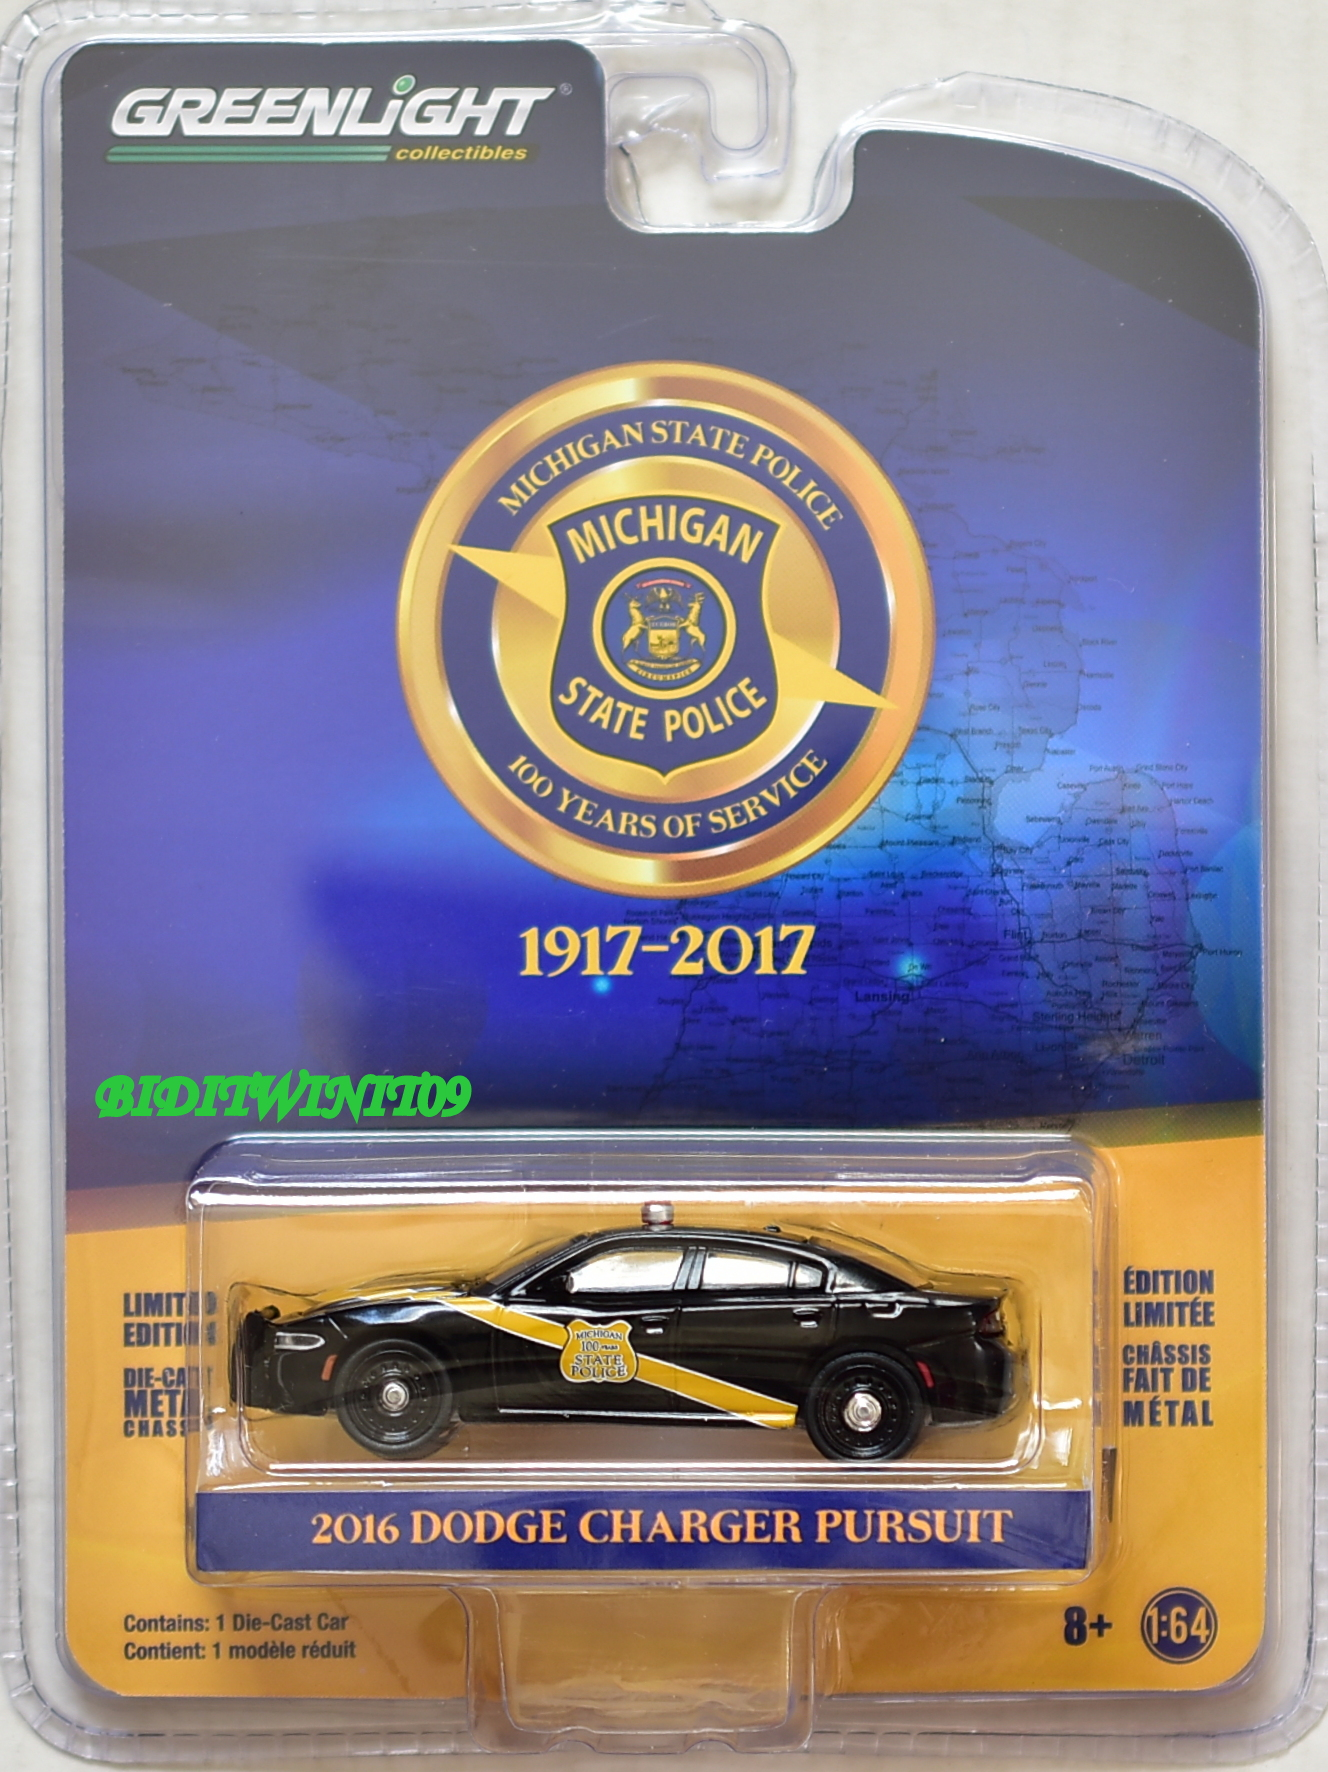 GREENLIGHT ANNIVERSARY SERIES 6 2016 DODGE CHARGER PURSUIT - Click Image to Close